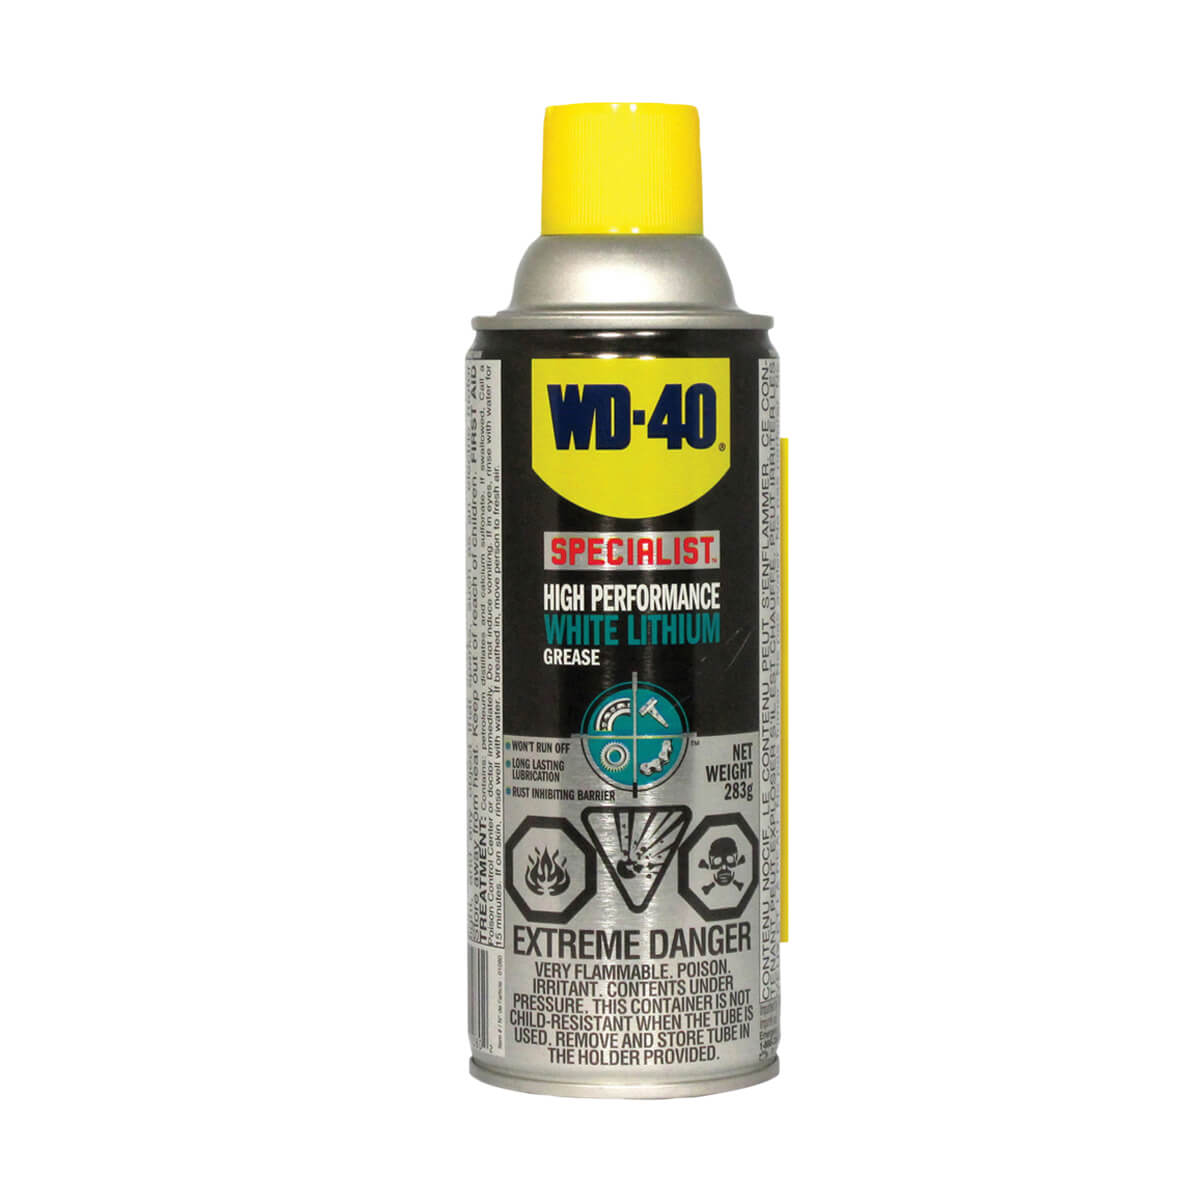 WD-40 Specialist White Lithium Grease - 283 g